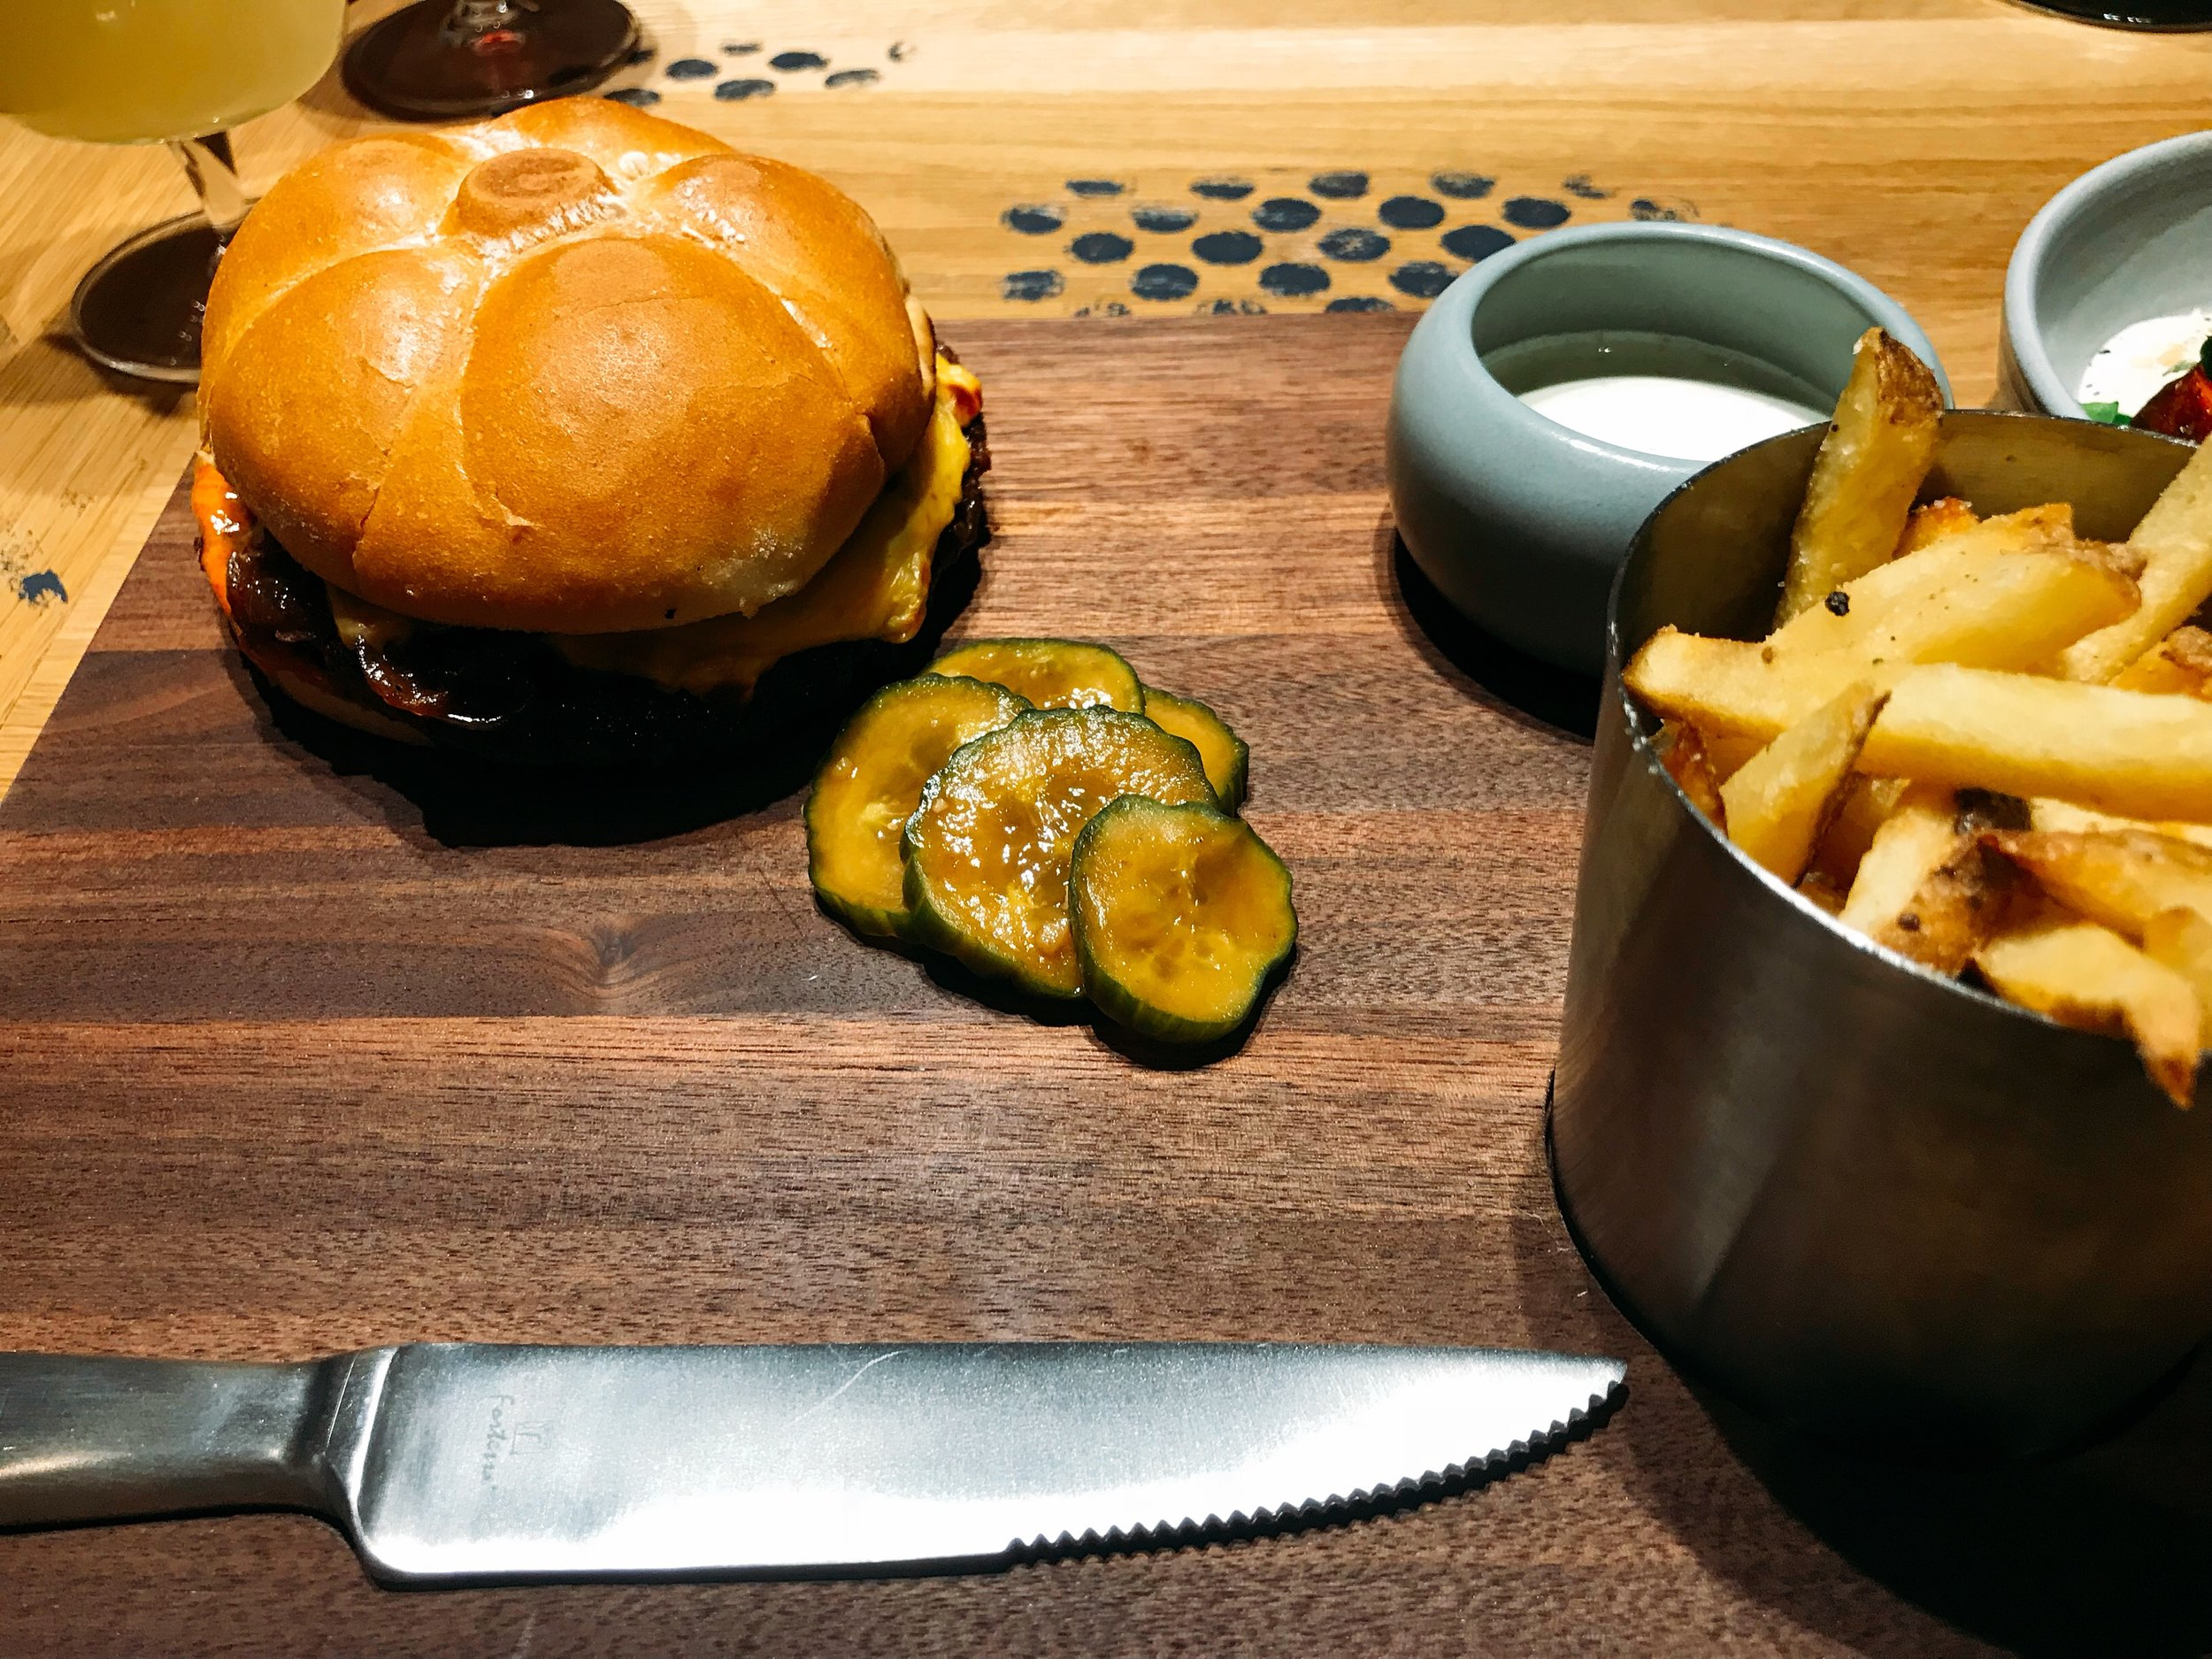 L&L Burger: Caramelized Onion, American Cheese and Burger Sauce